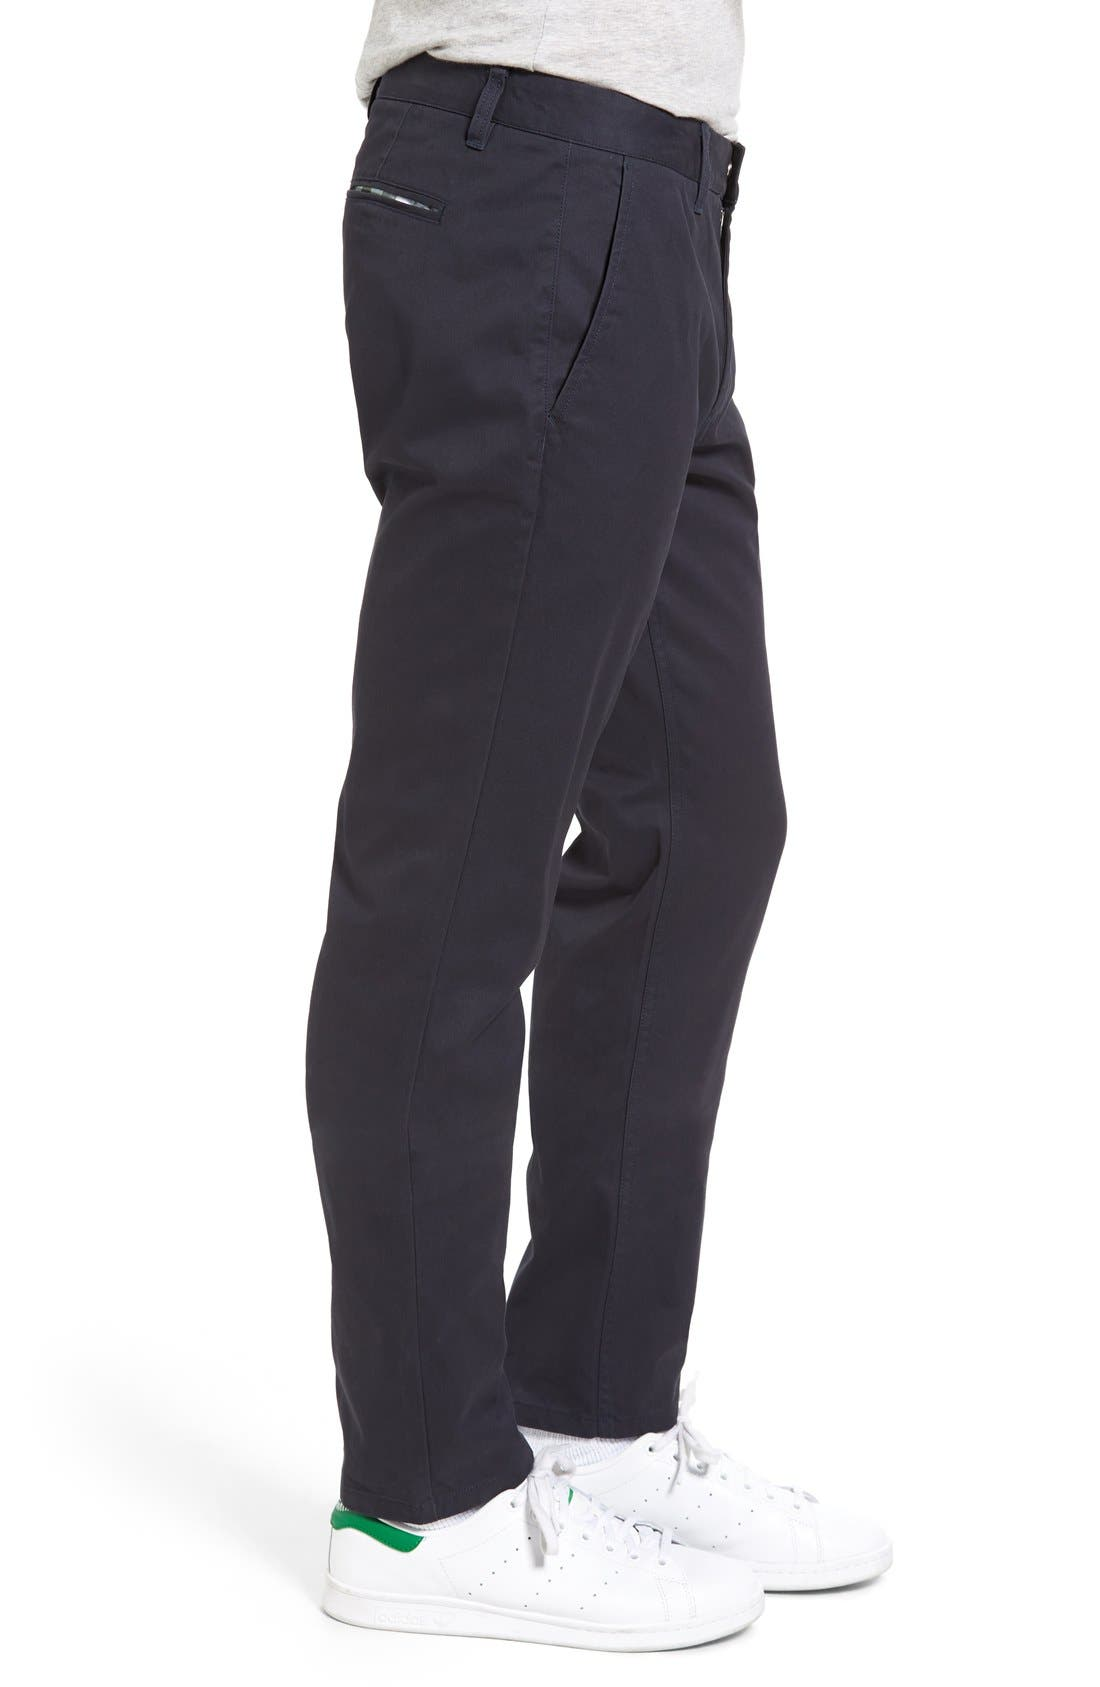 BONOBOS, Straight Fit Washed Chinos, Alternate thumbnail 7, color, JET BLUE